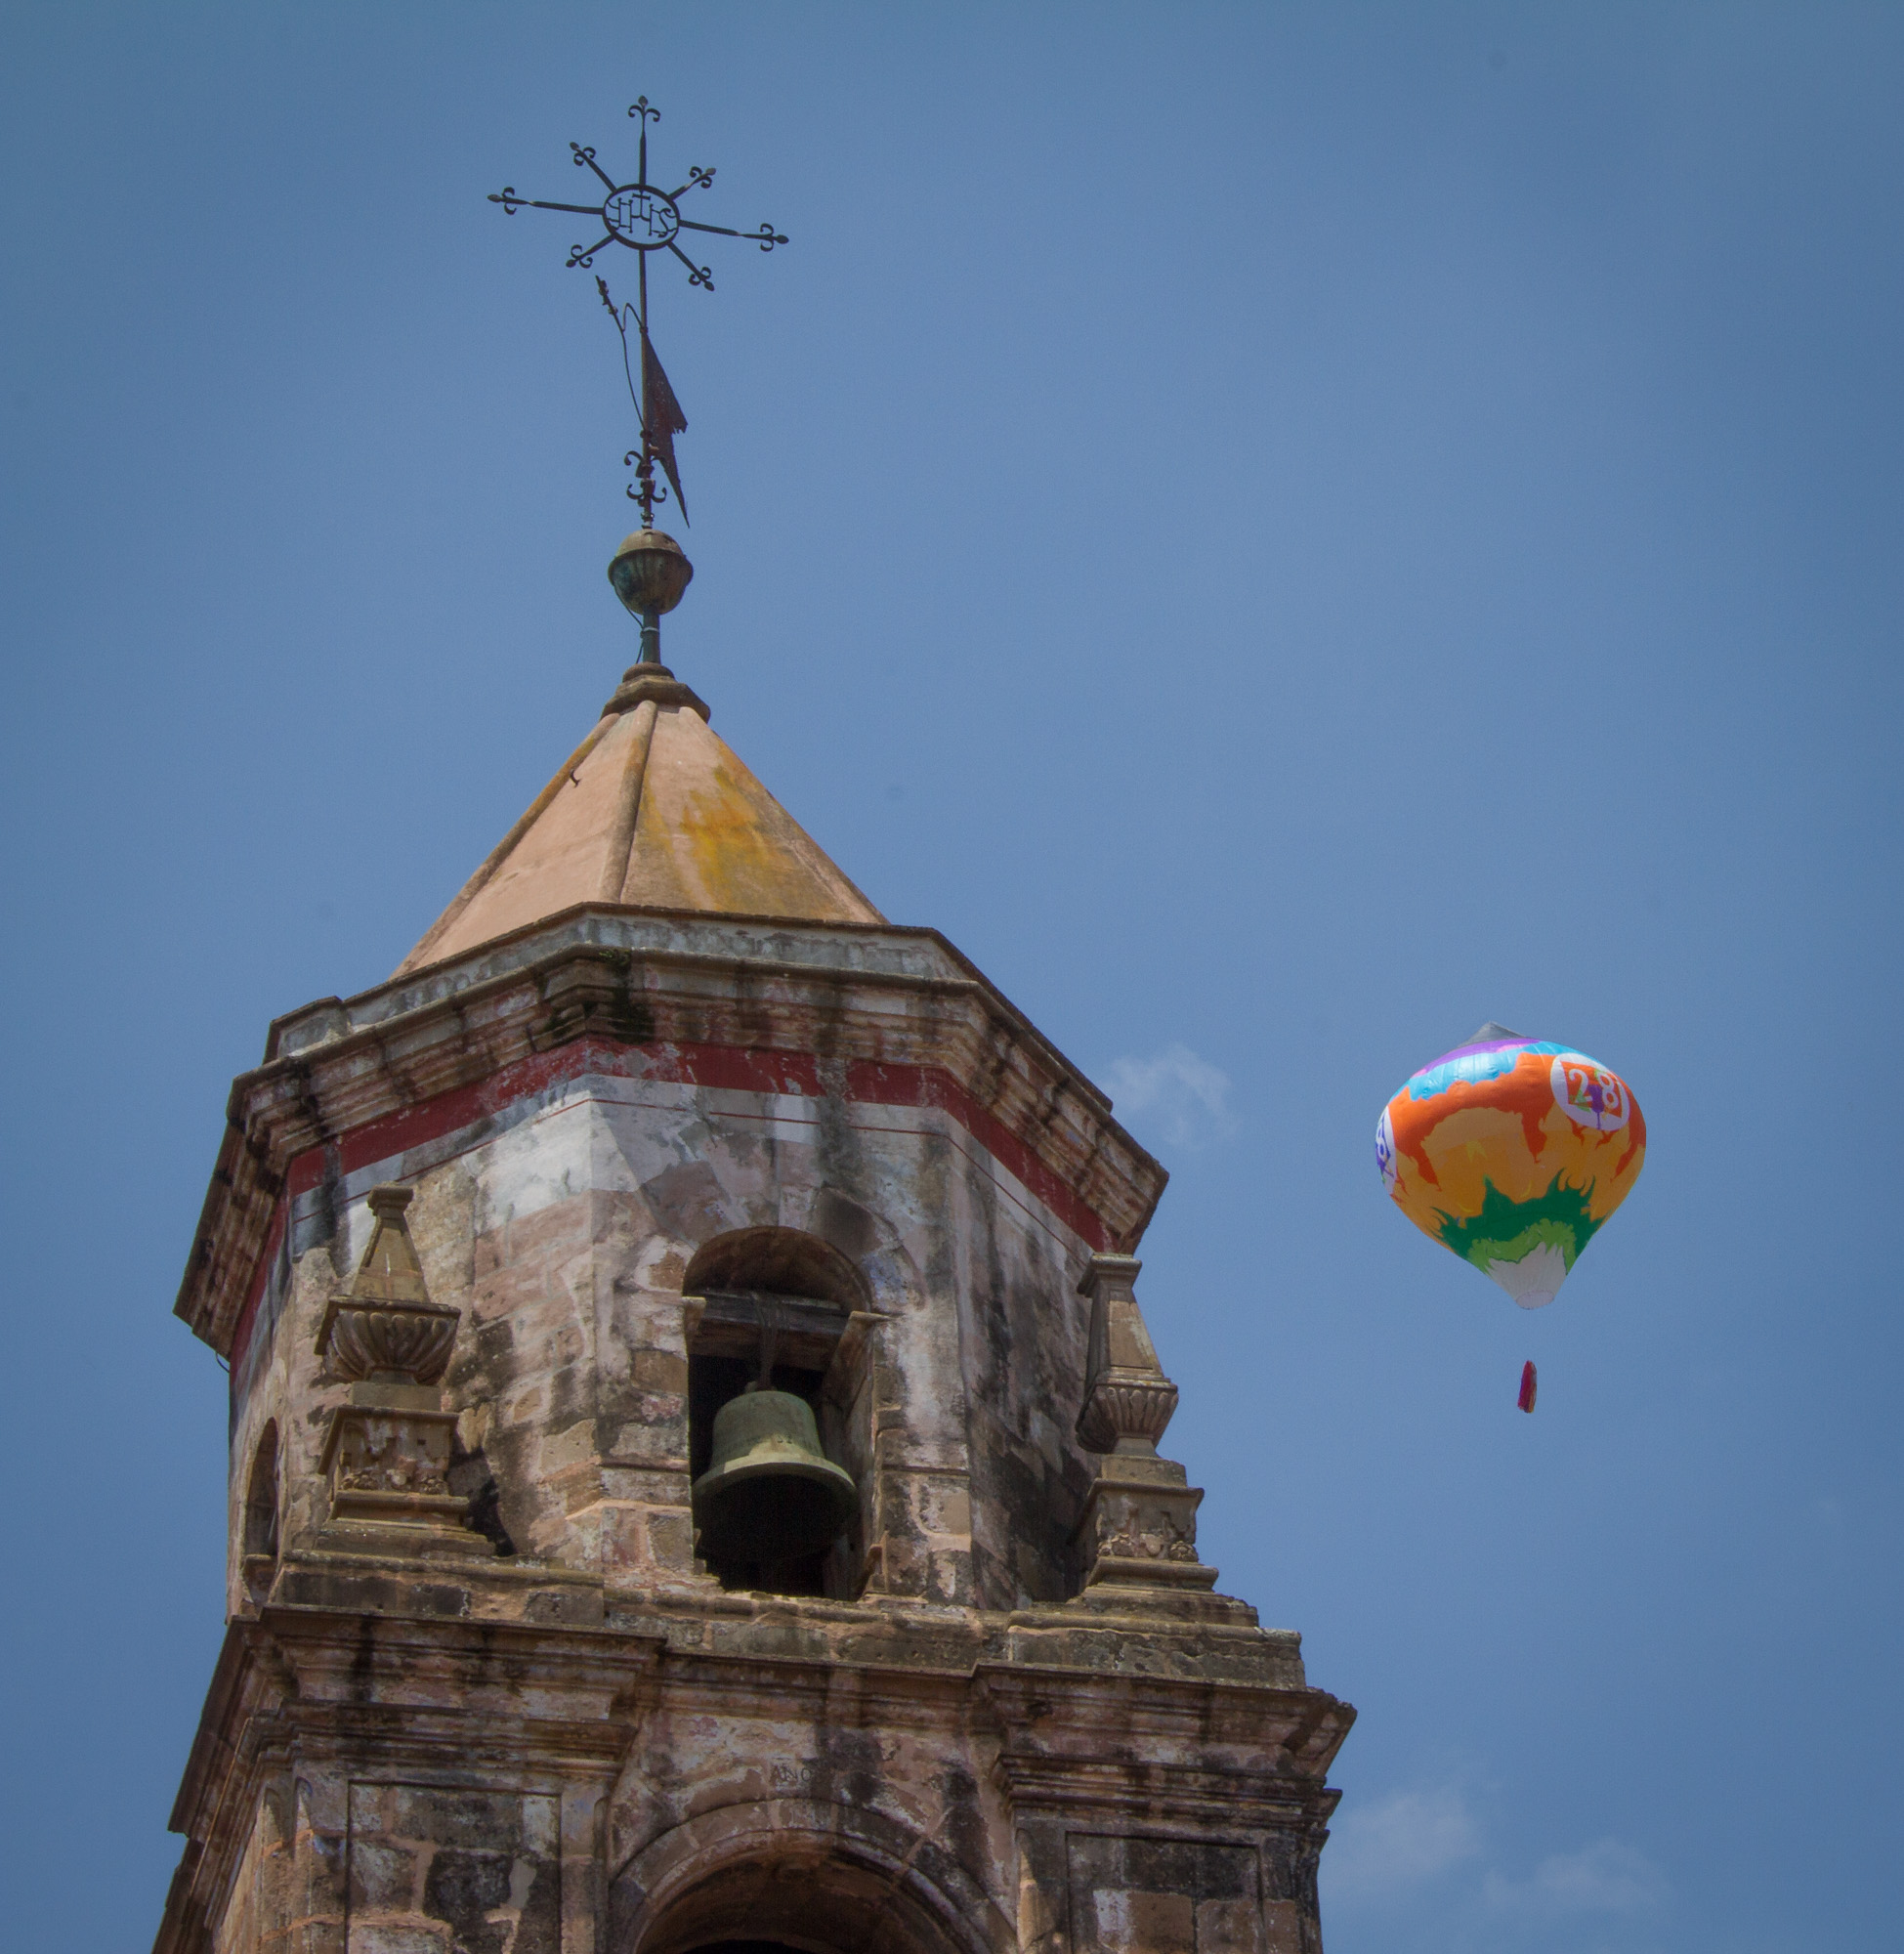 Balloons in the Belfry   CantoyaFest: Pátzcuaro, Michoacán, Mexico — Saturday, July 22, 2017